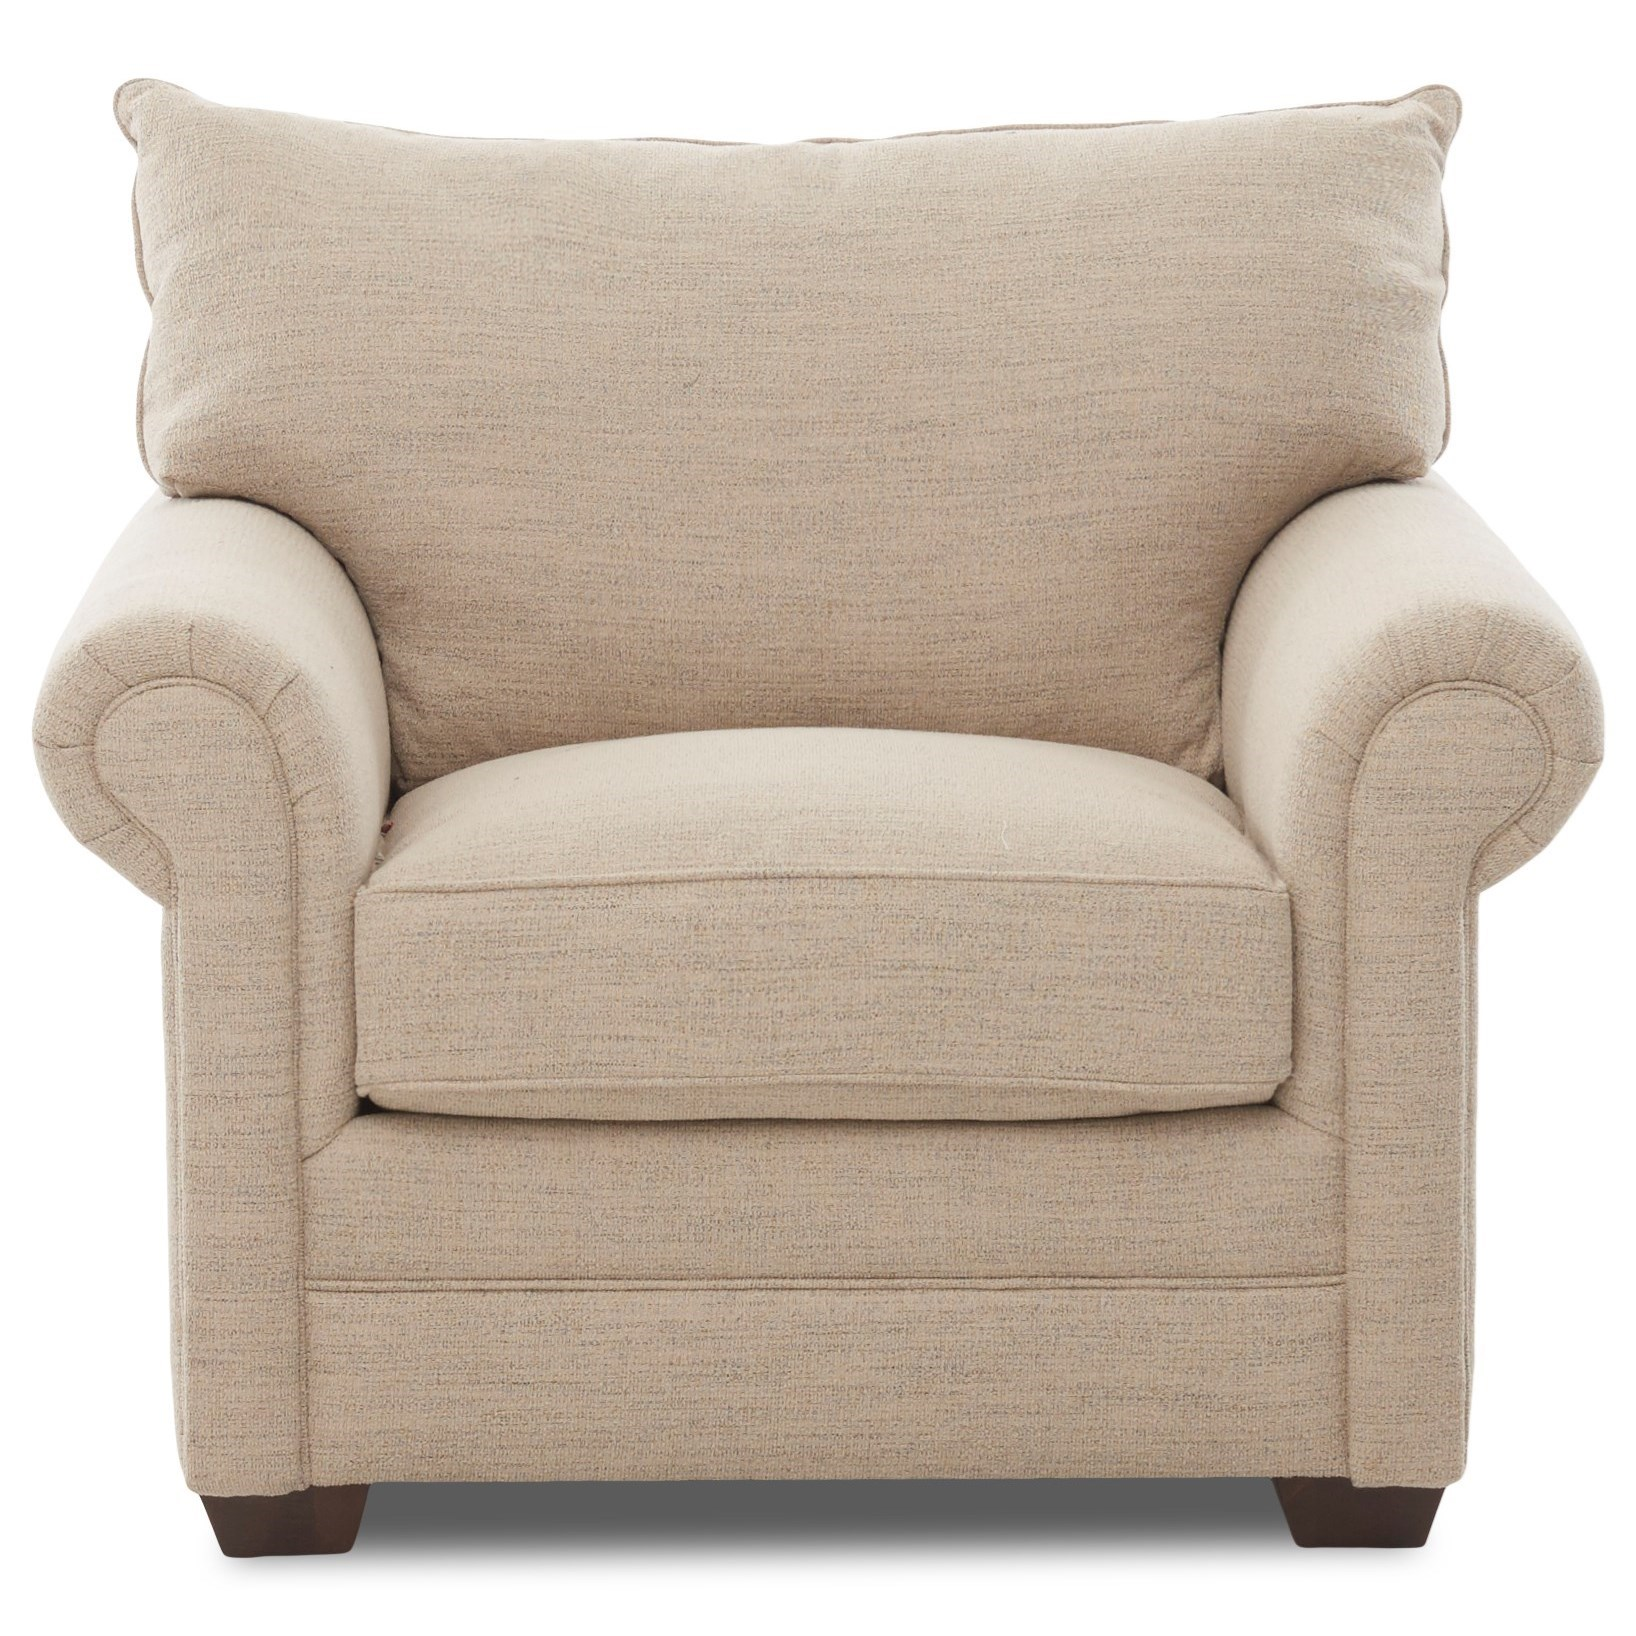 Huntley Chair by Klaussner at Johnny Janosik